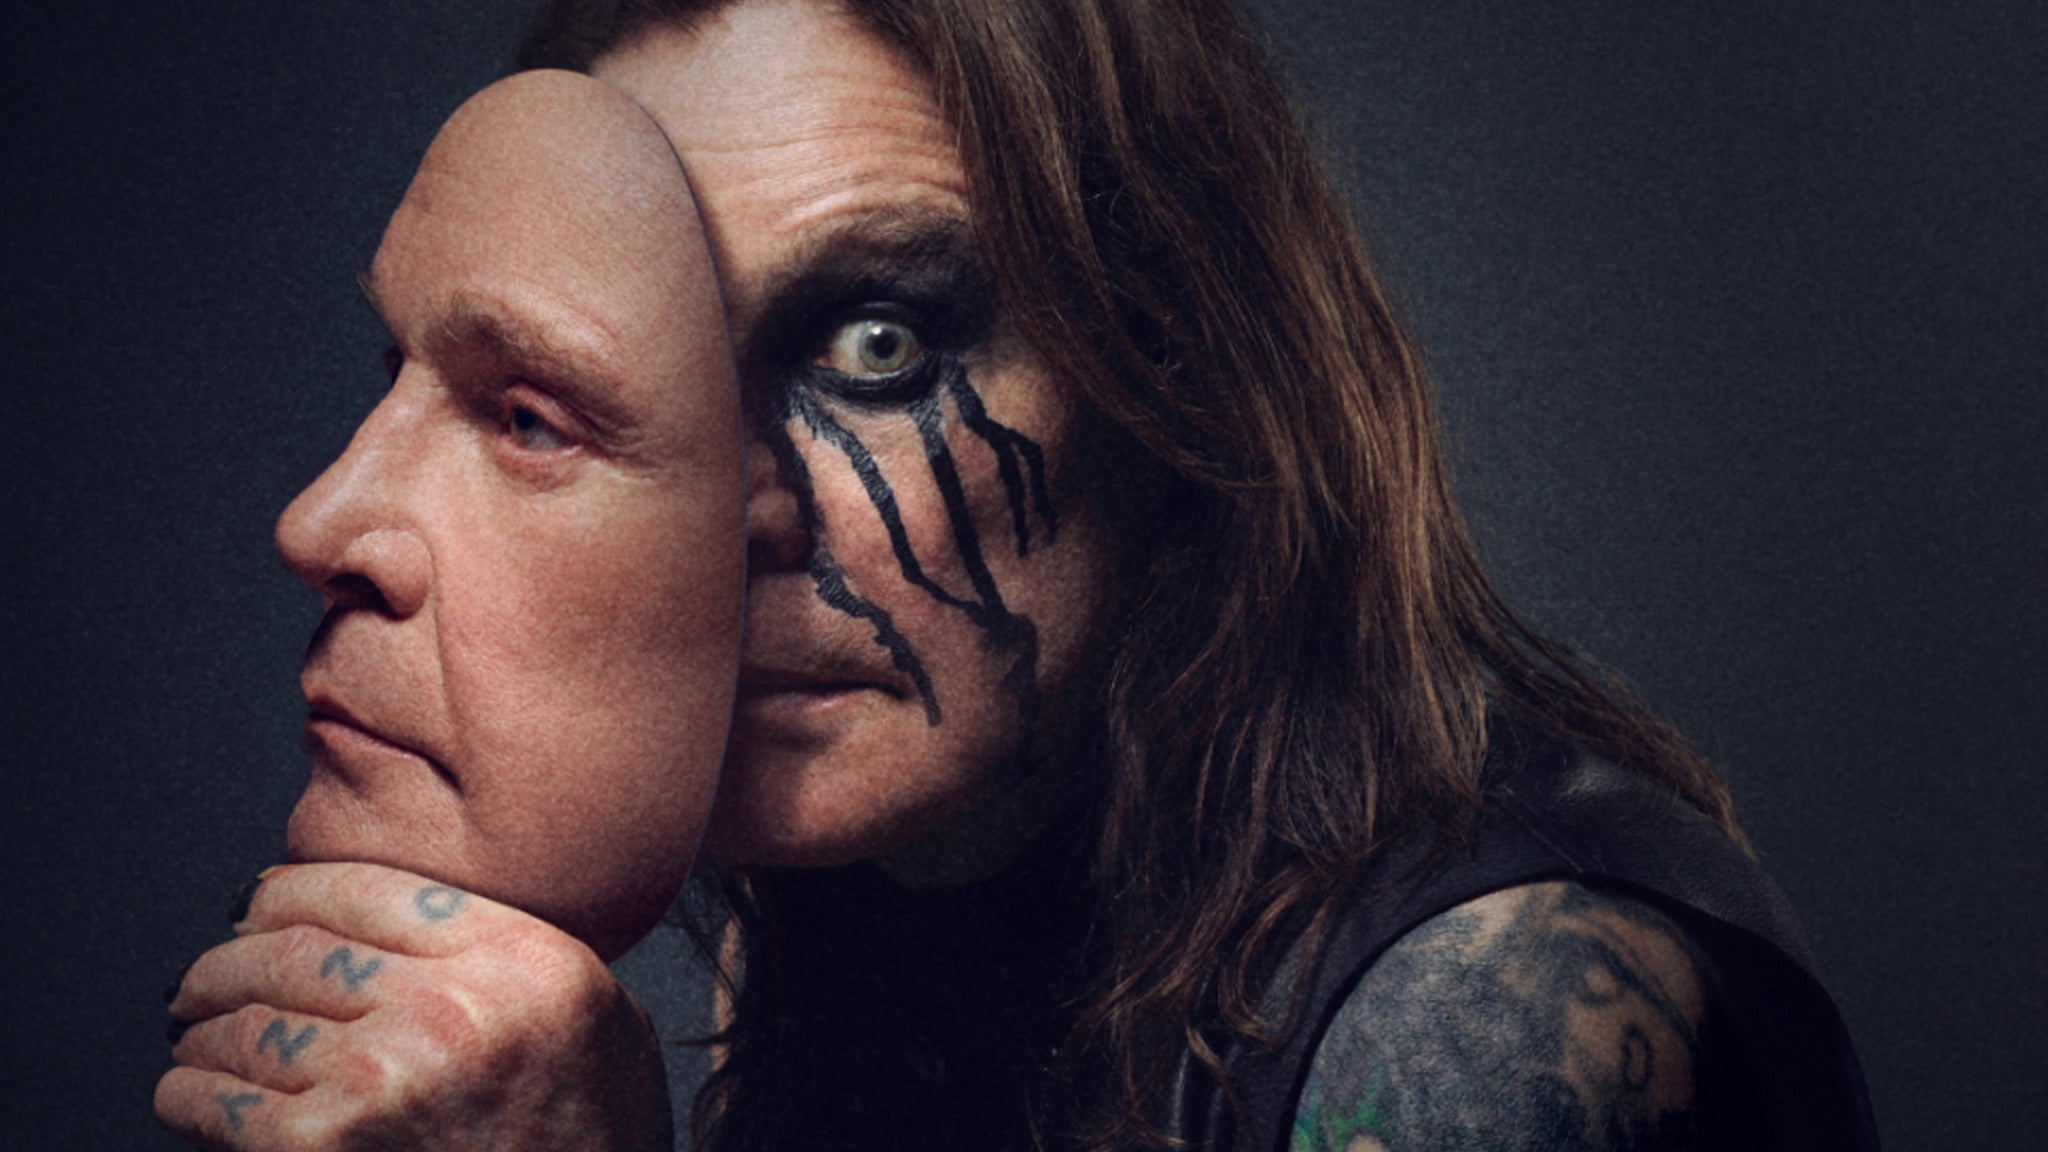 Ozzy Osbourne - Meet & Greet Packages at KeyBank Pavilion